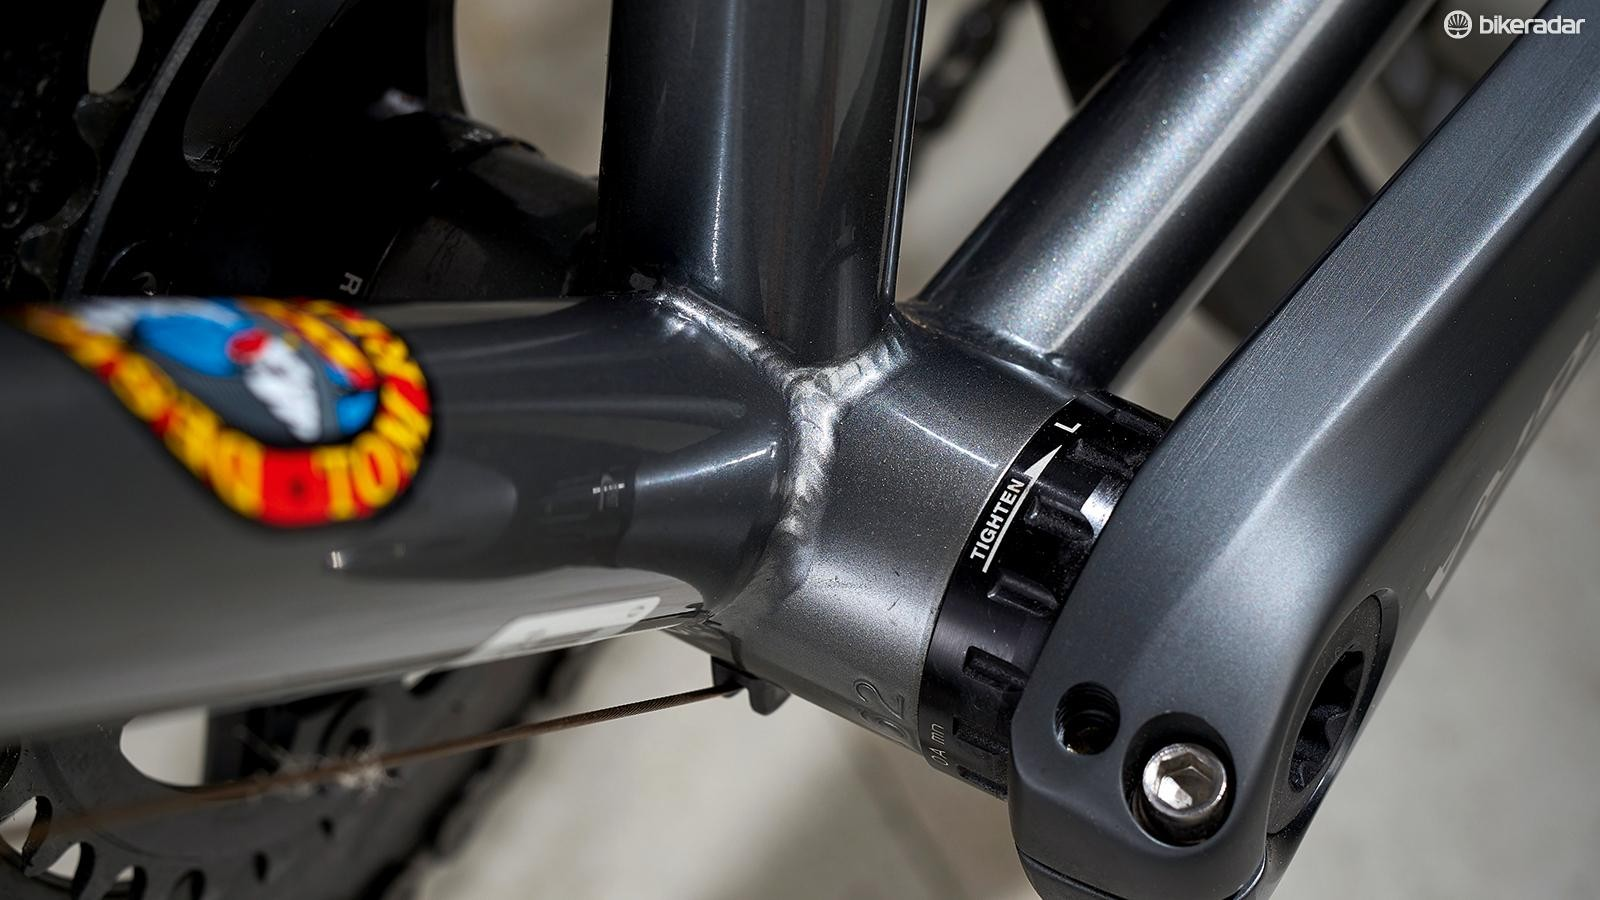 The Ritchey Logic butted tube design has been around since 1984